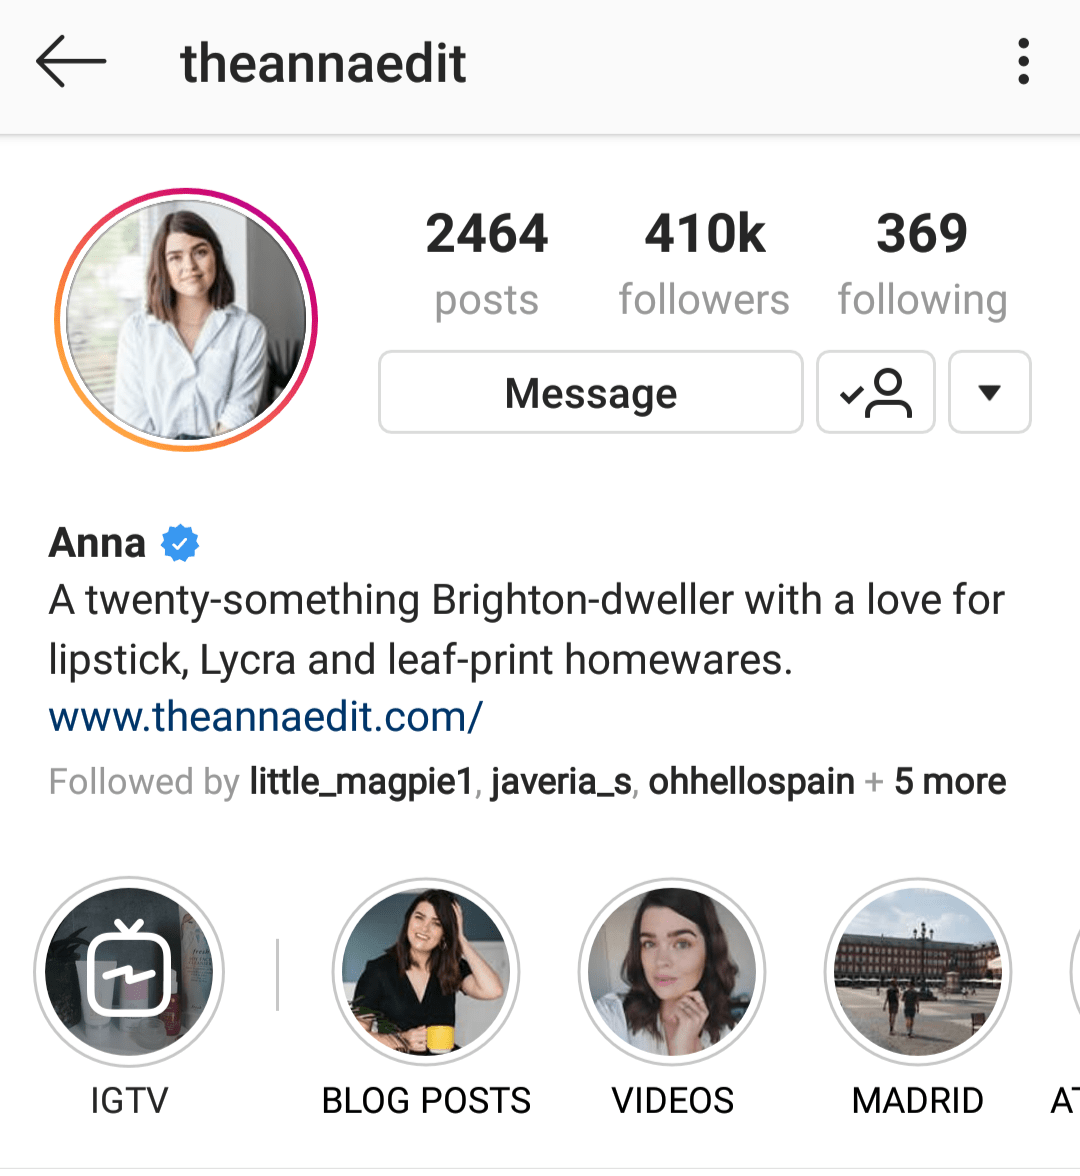 @theannaedit has great Instagram bio ideas to attract ideal followers.